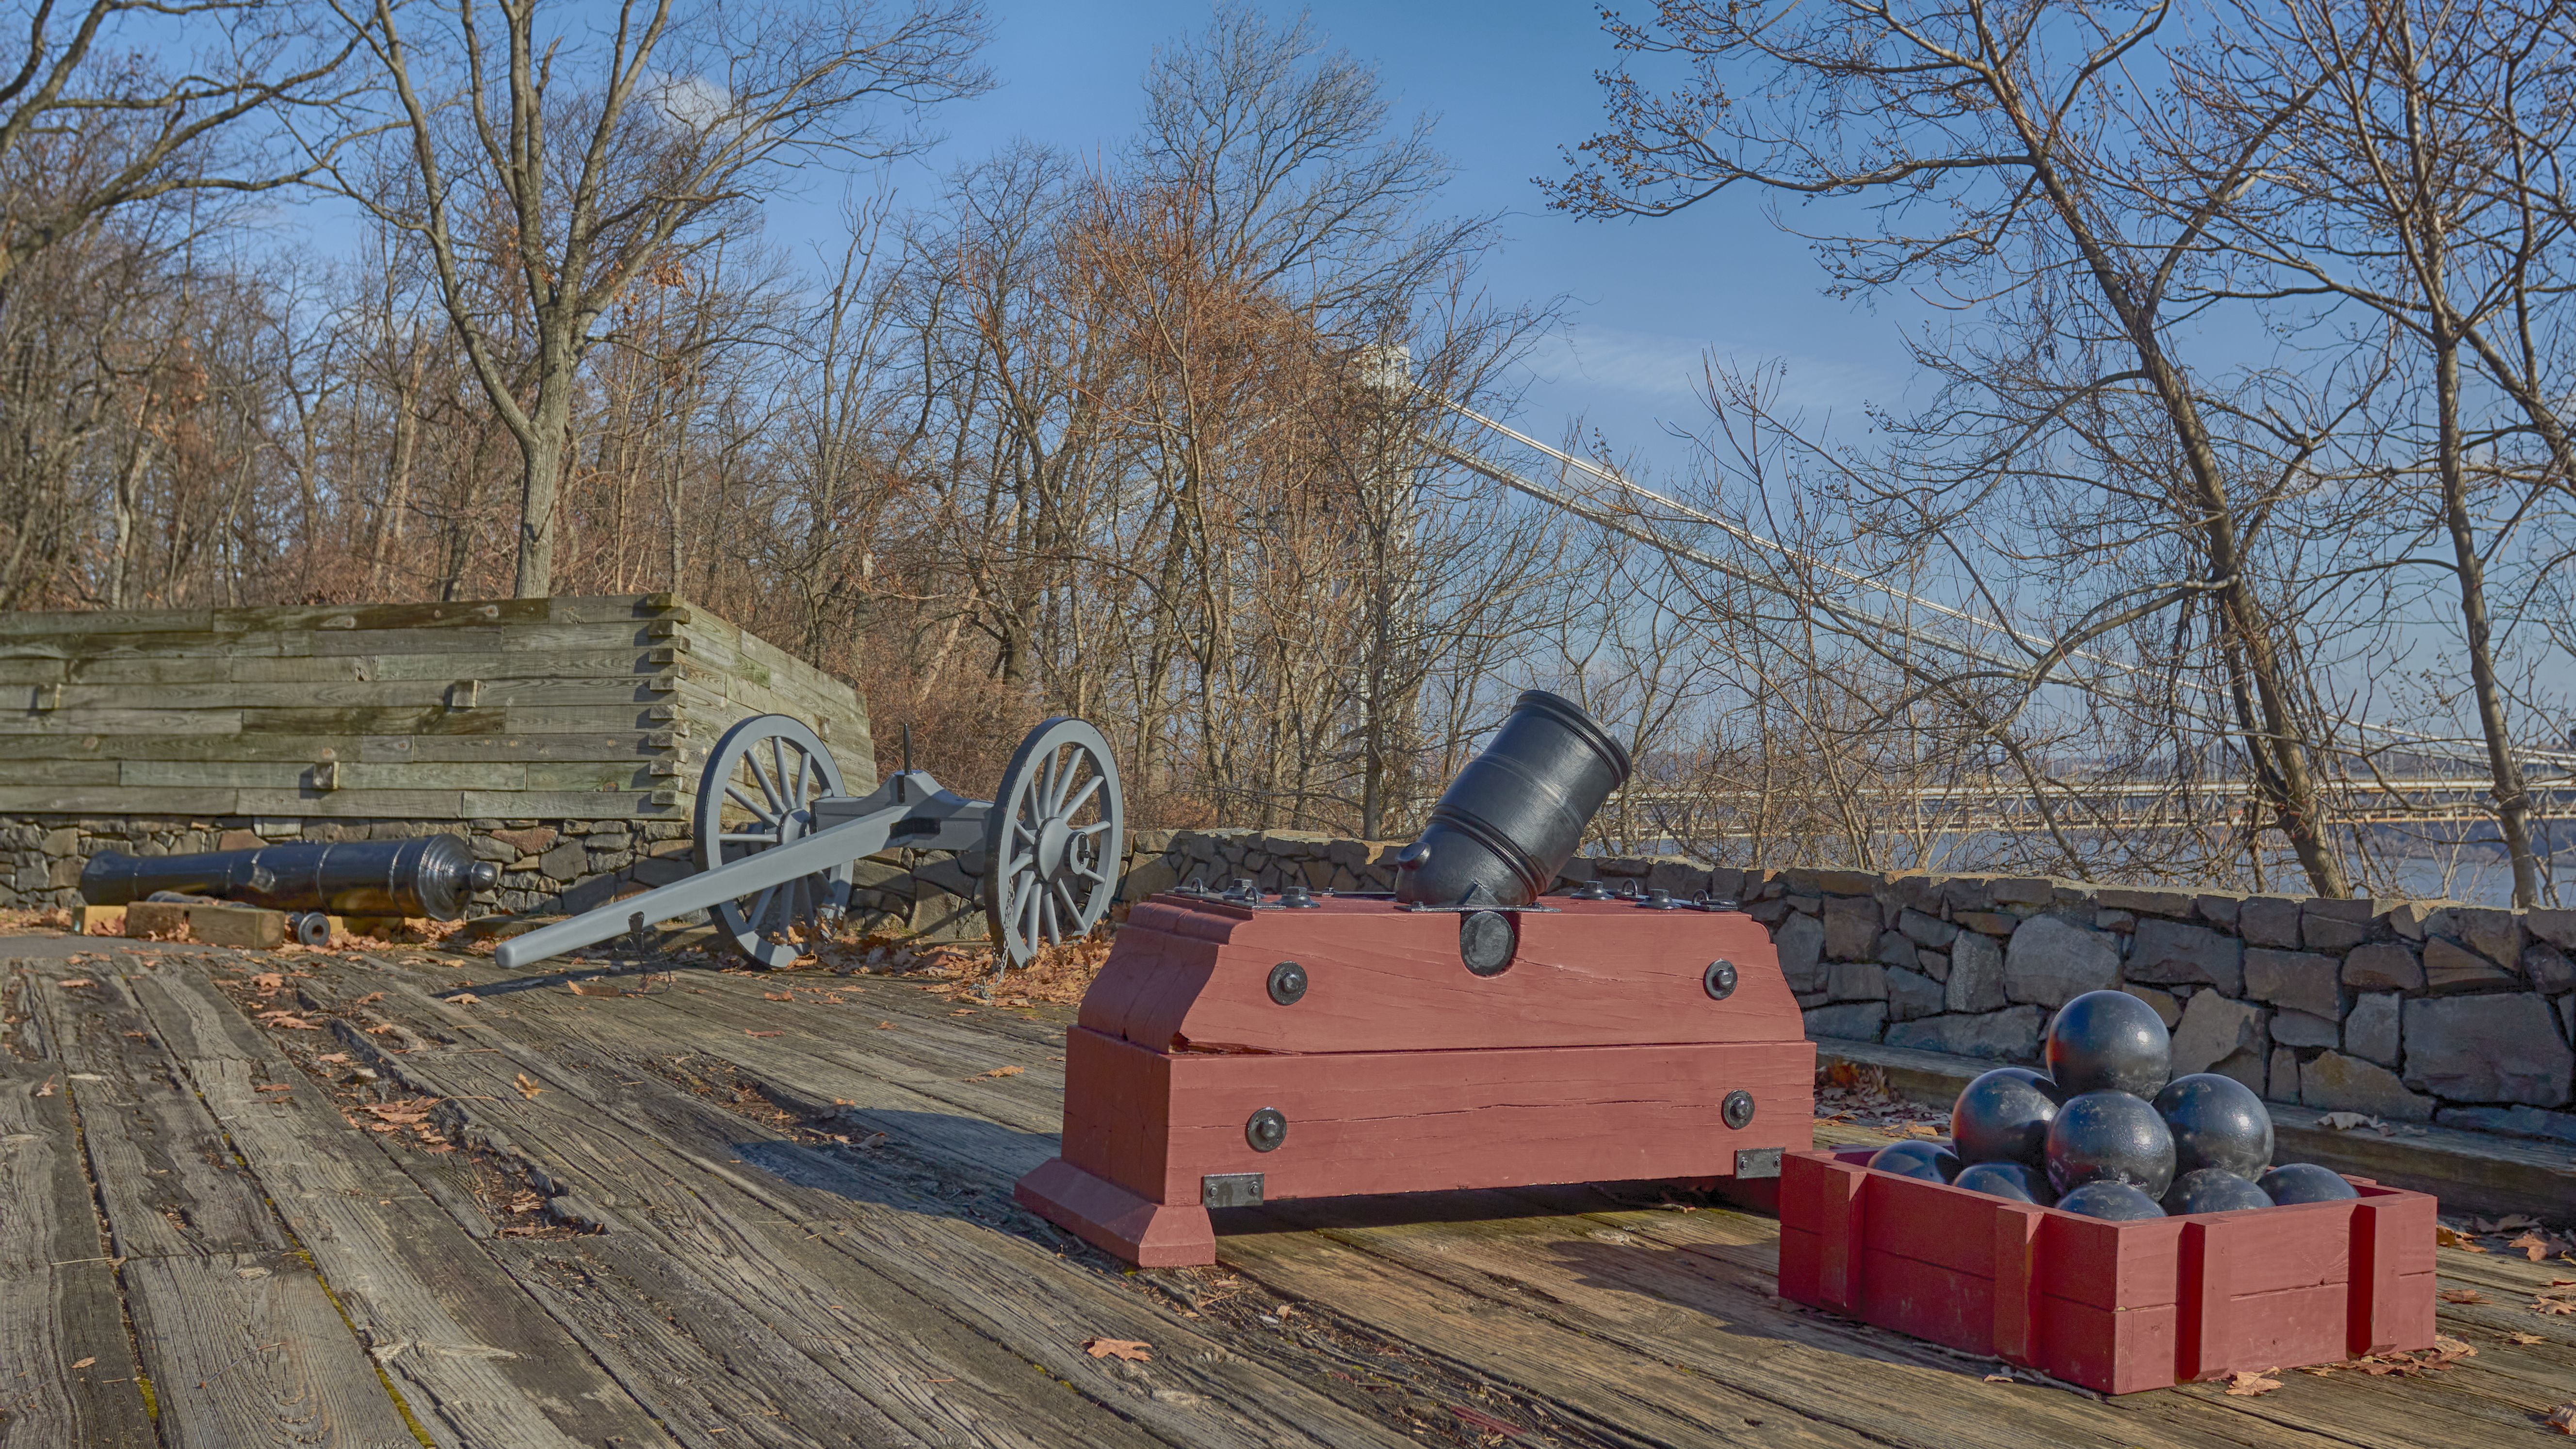 Gunnery emplacement in Fort Lee, including a mortar with cannon balls, and a cannon.